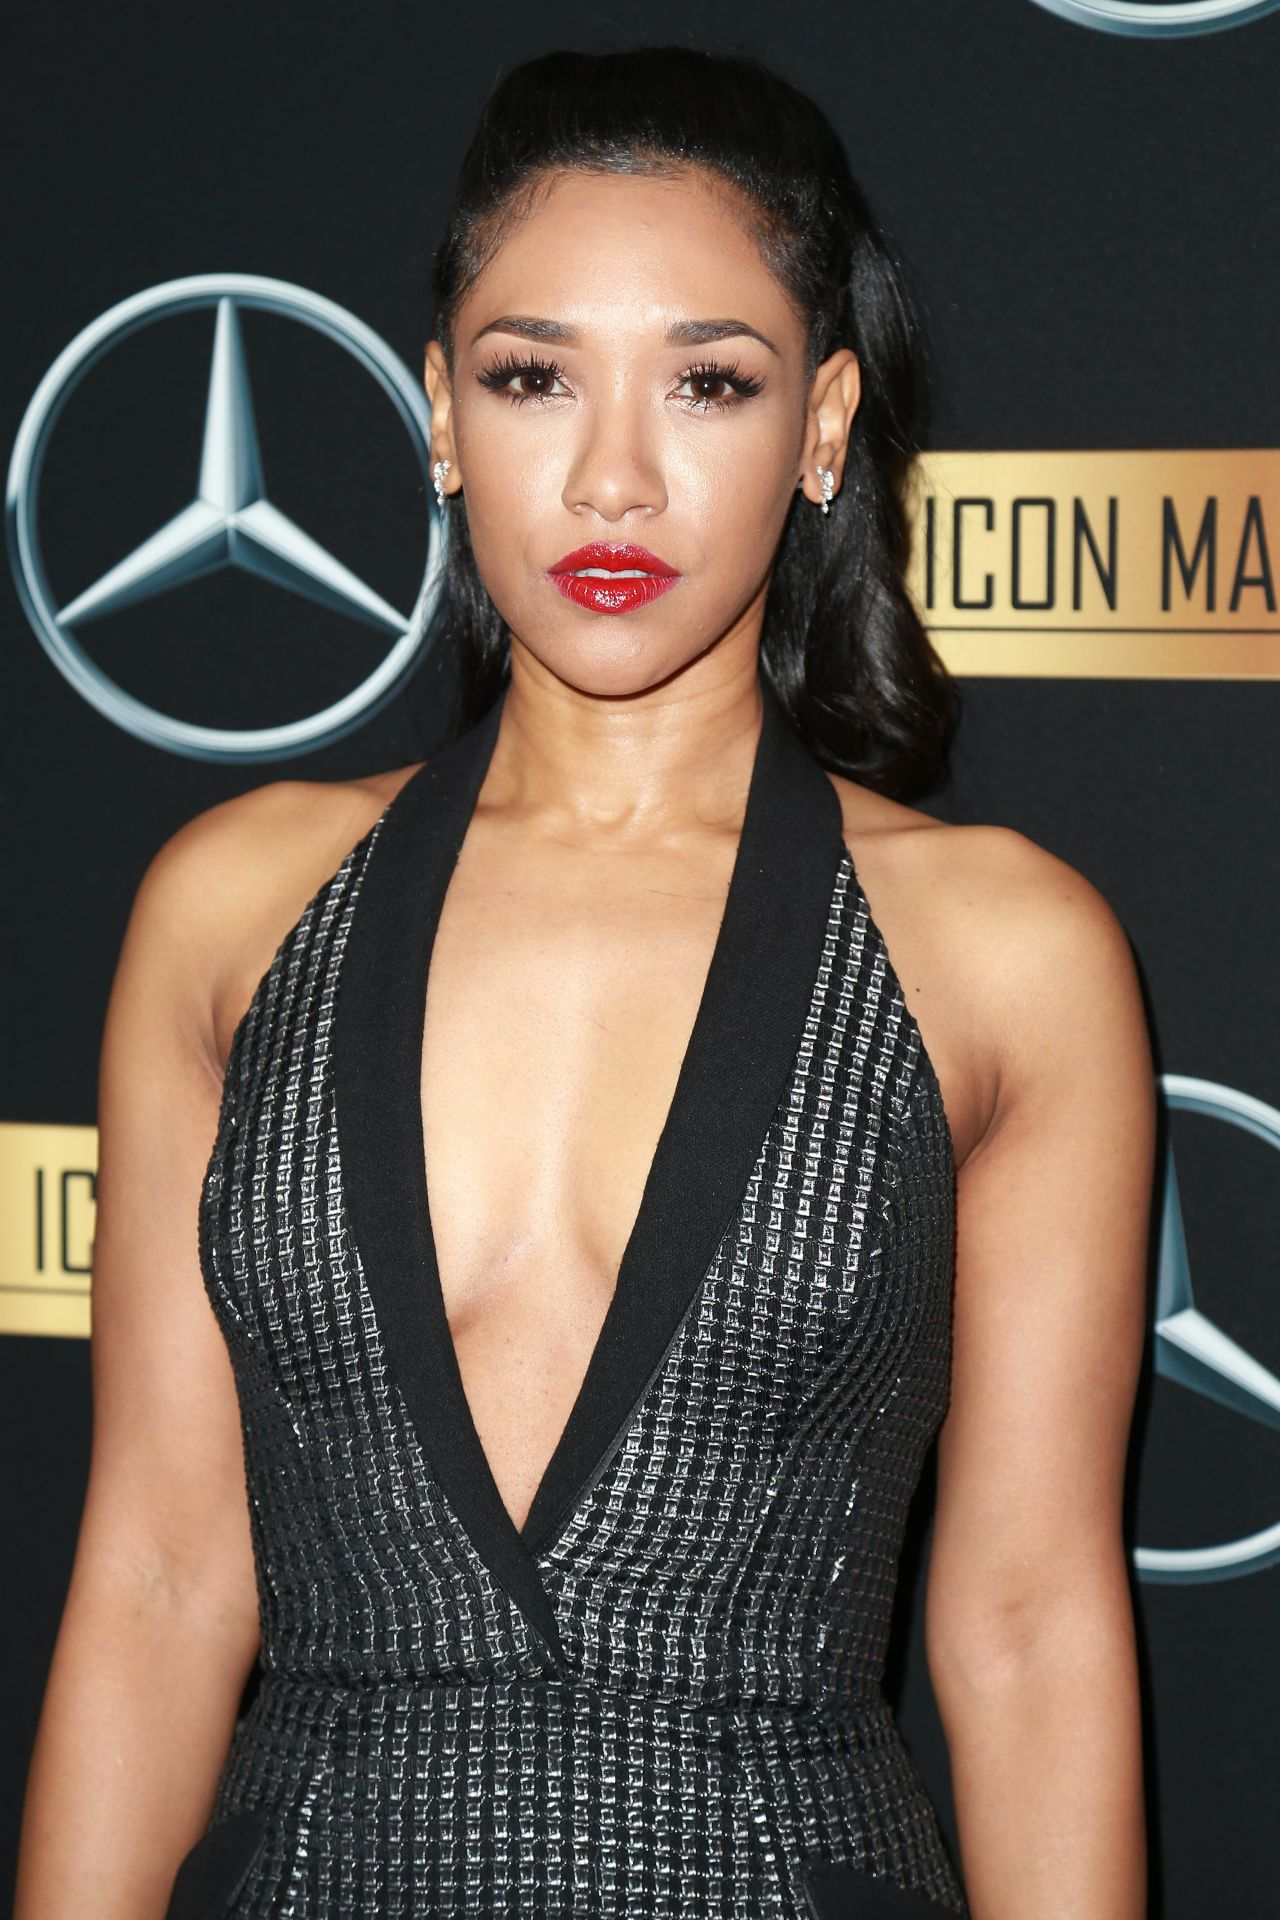 Candice Patton Mercedes Benz Icon Mann 2017 Academy